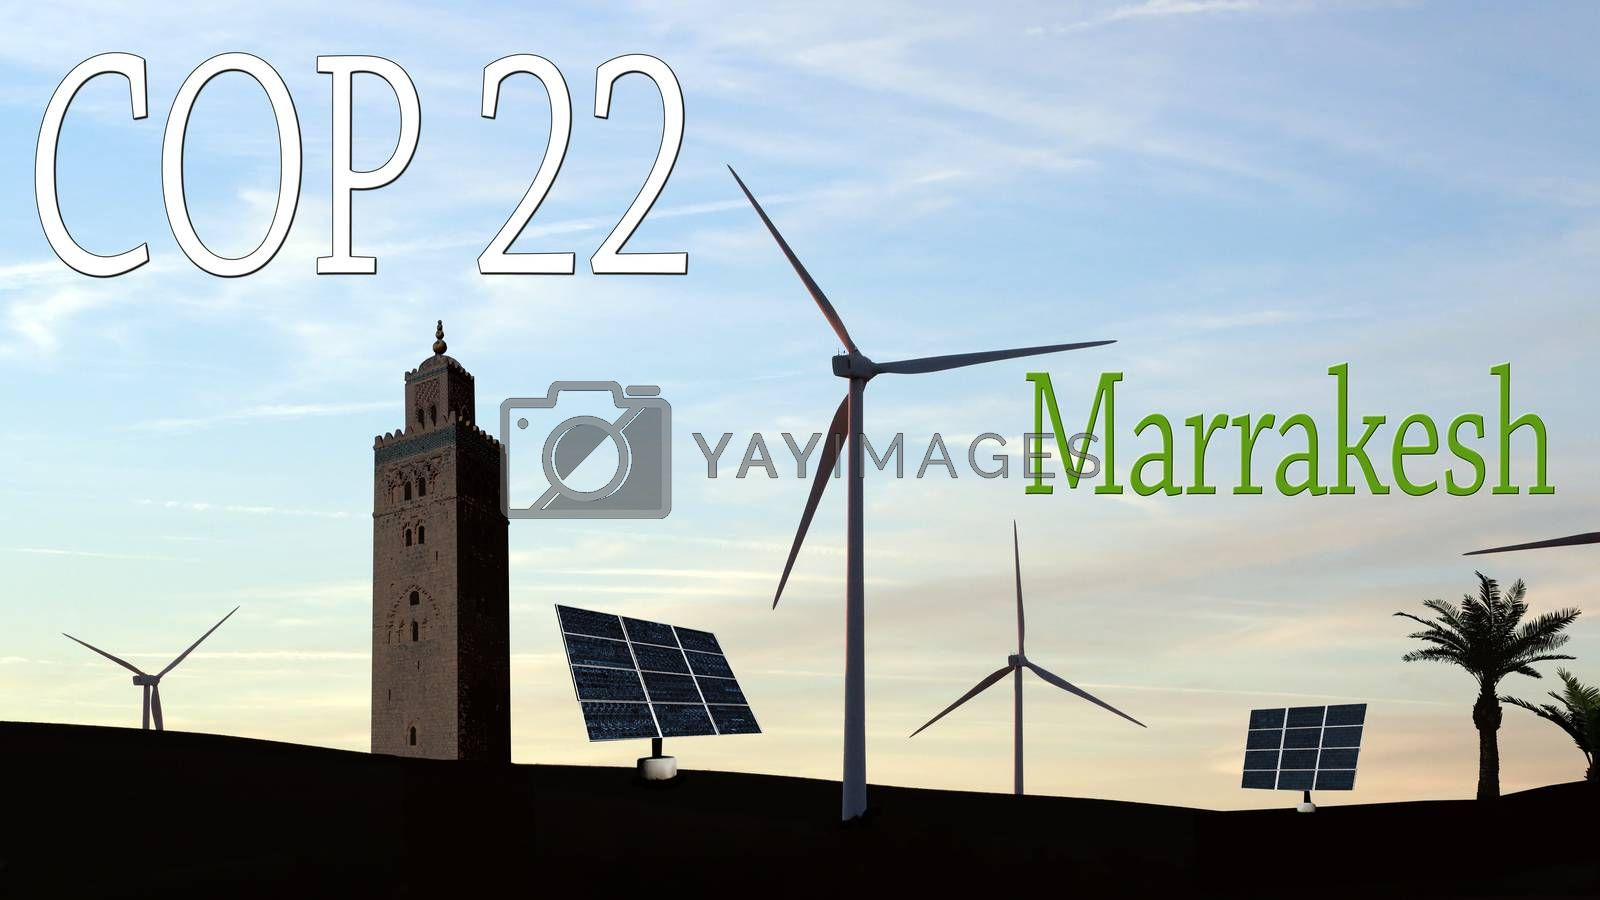 COP 22 in Marrakesh, Morocco - Wind Turbines and Solar Panels in a Moroccan Landscape